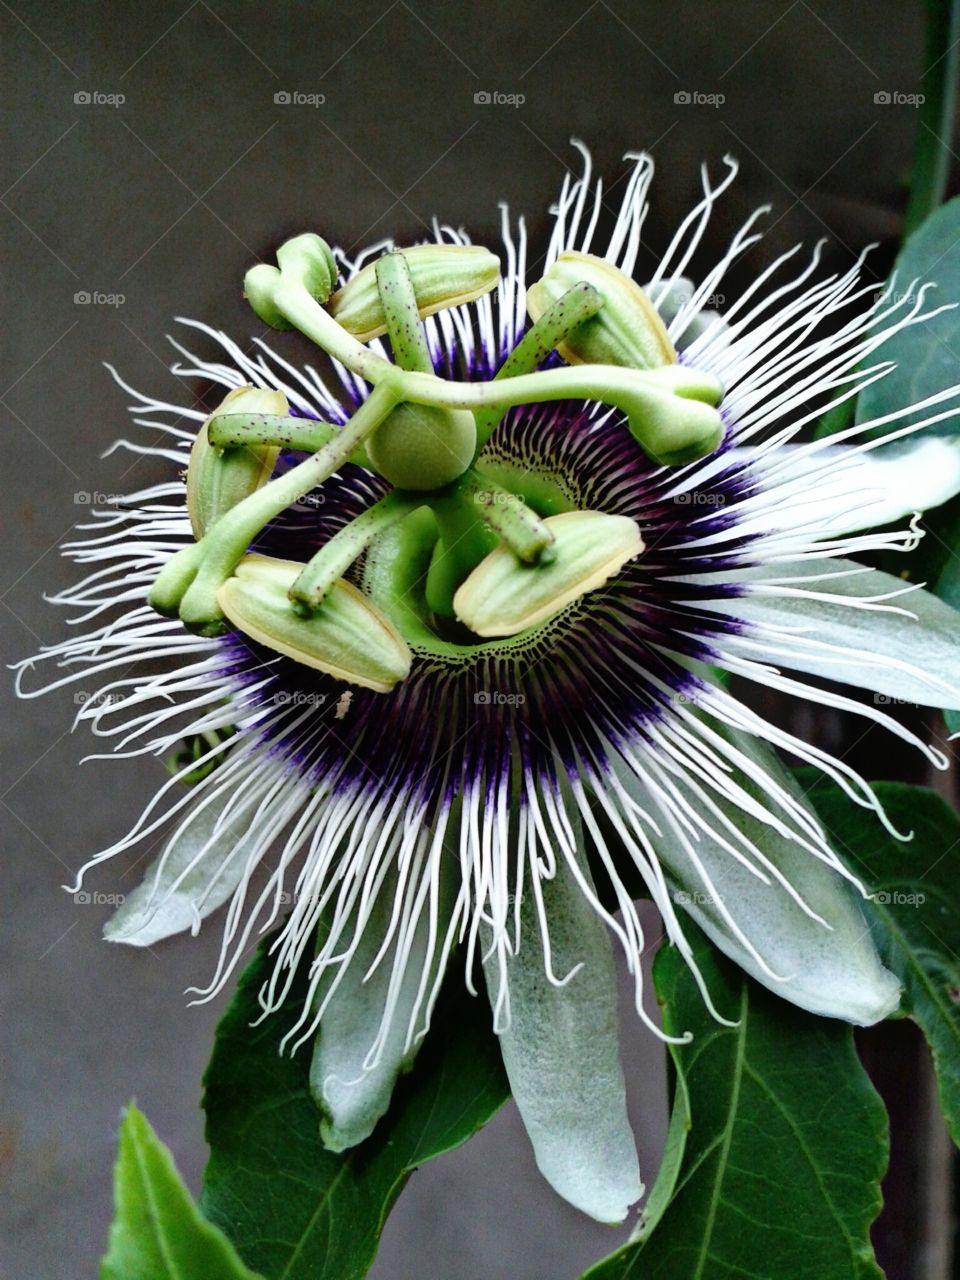 flower of fassion fruit